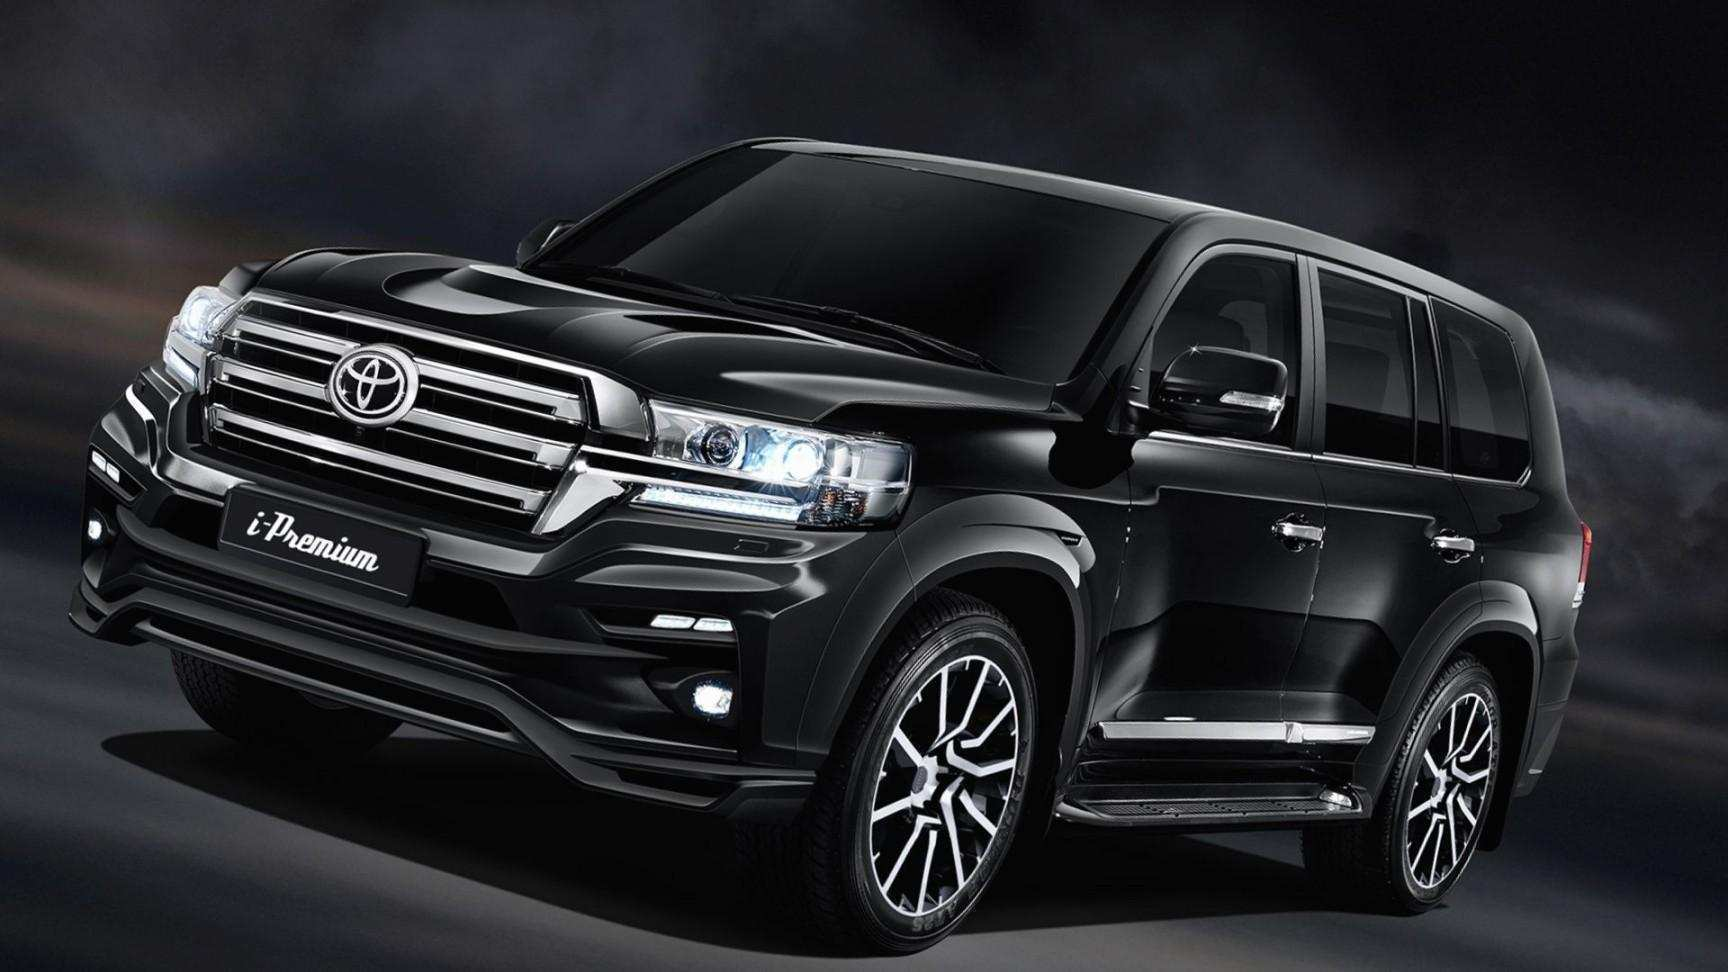 28 All New Toyota Land Cruiser V8 2019 Prices